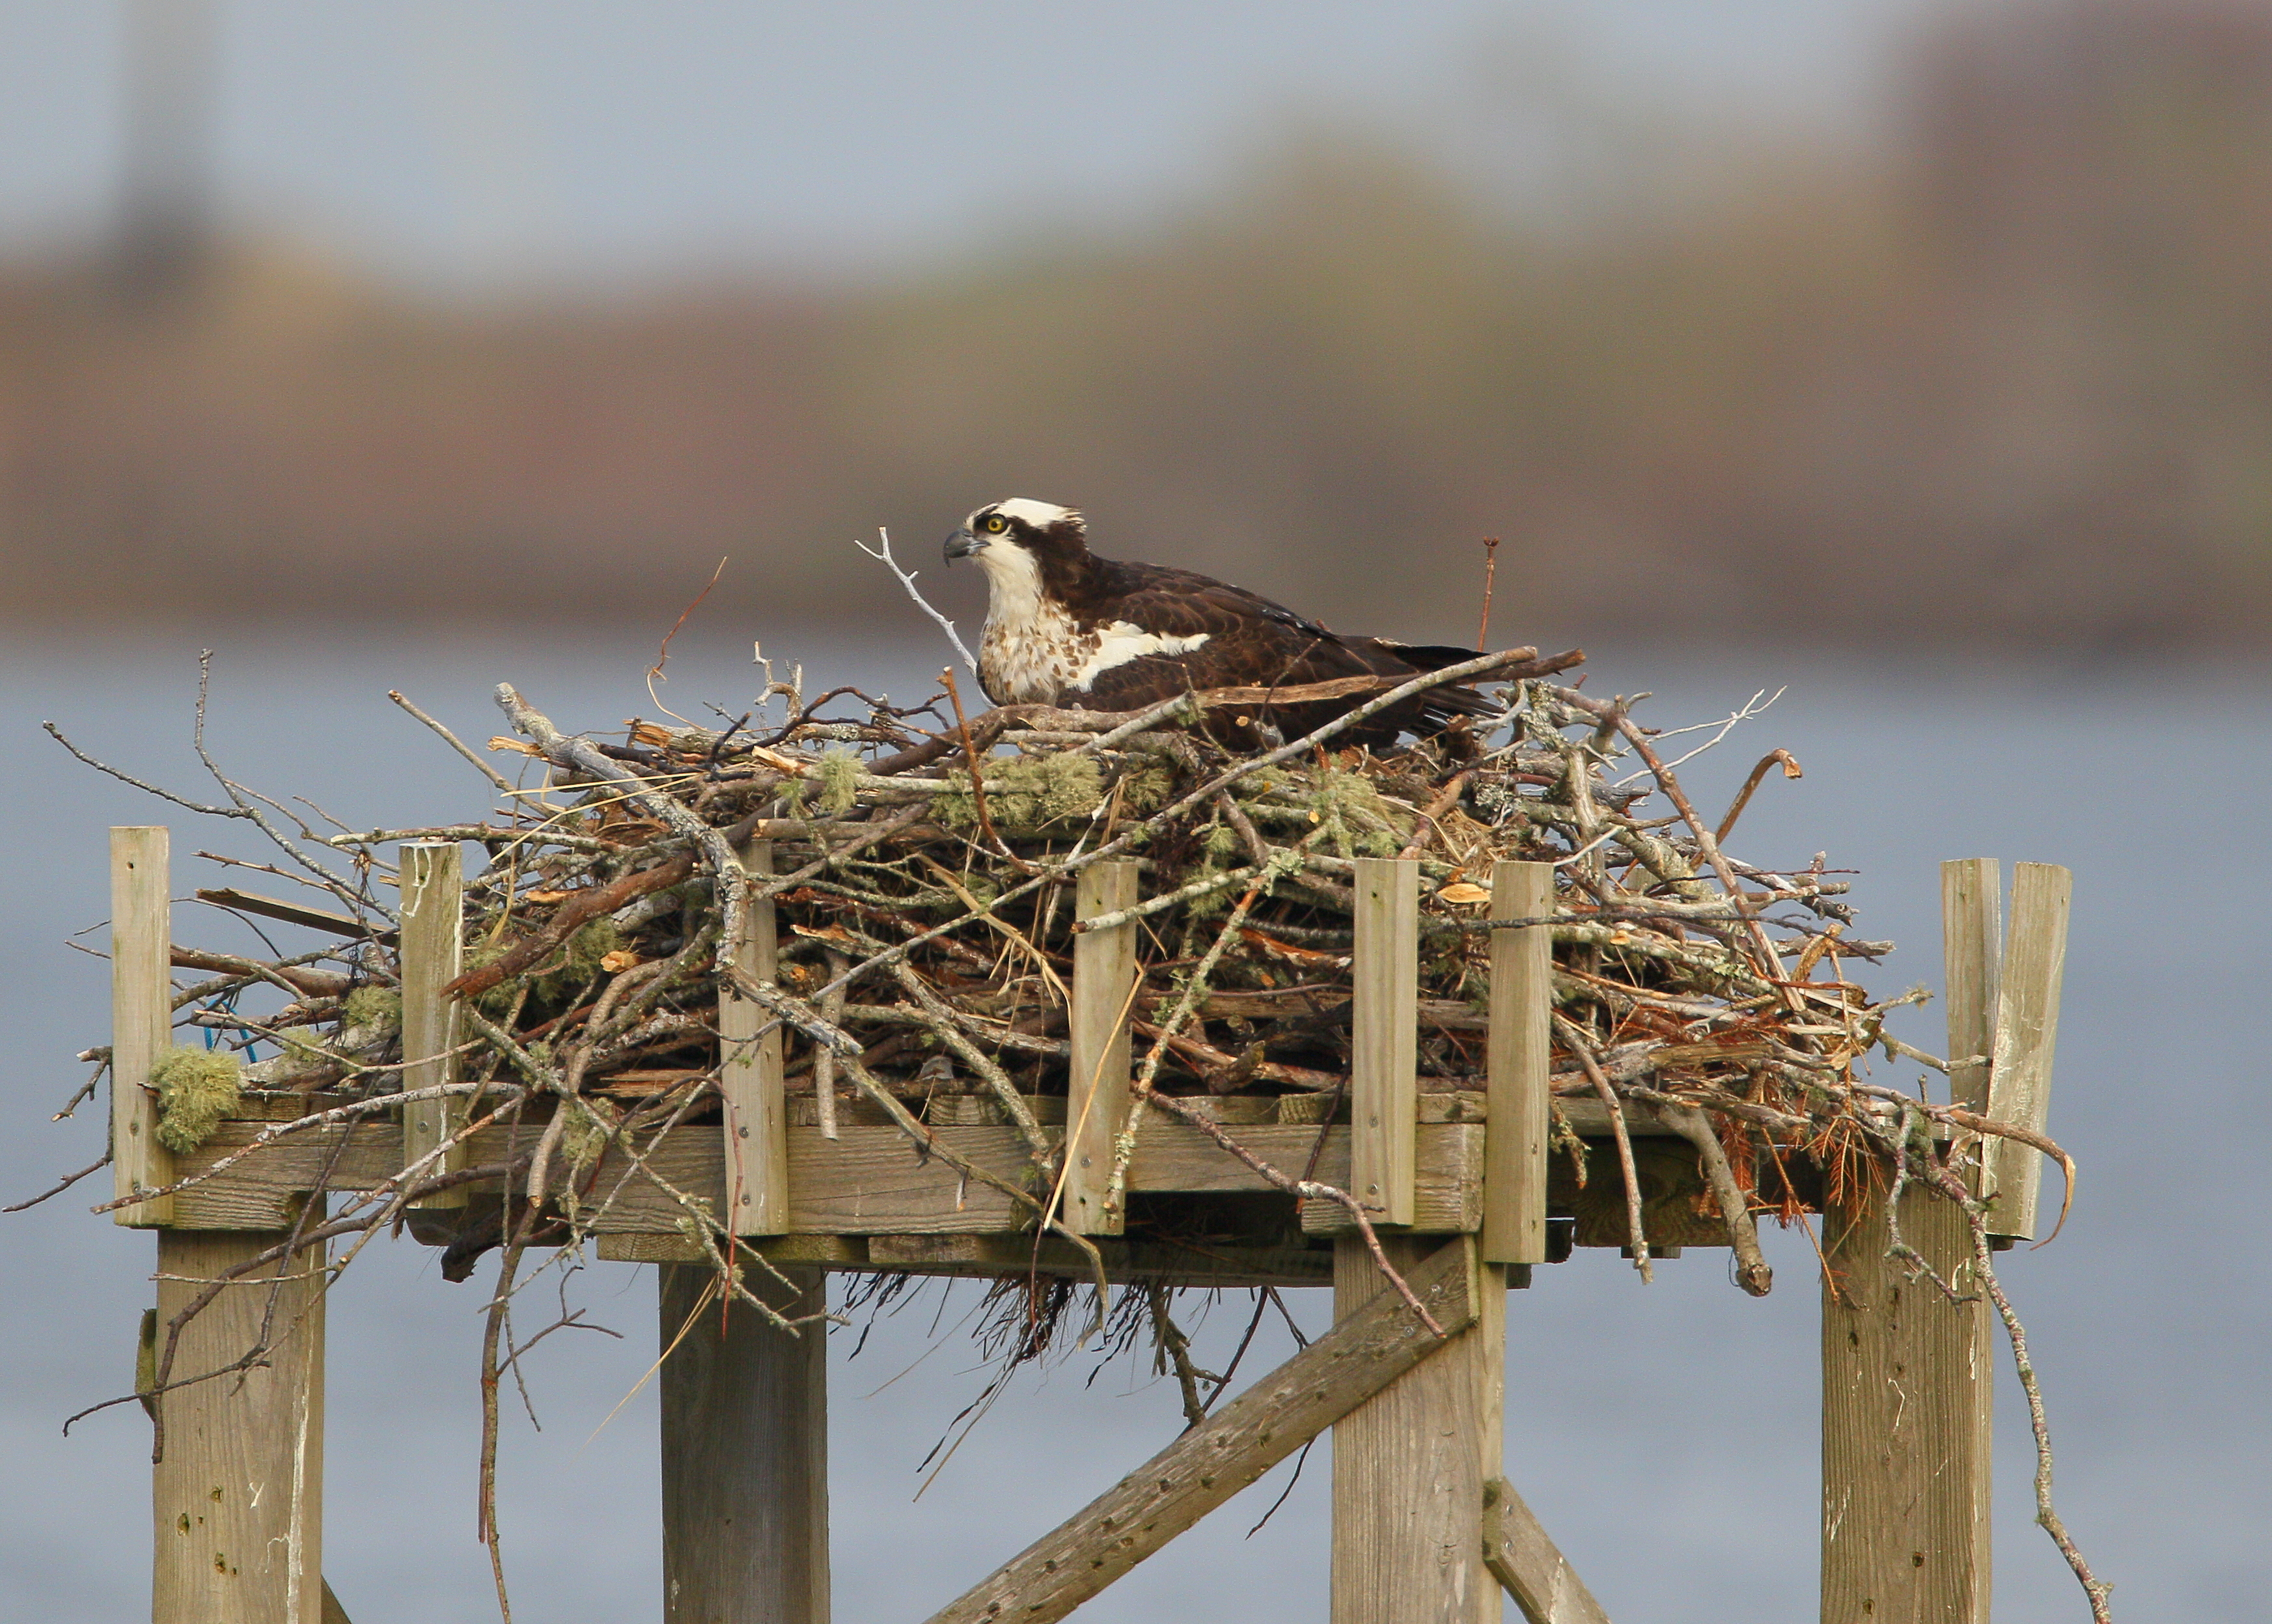 nesting osprey back from the brink of extinction